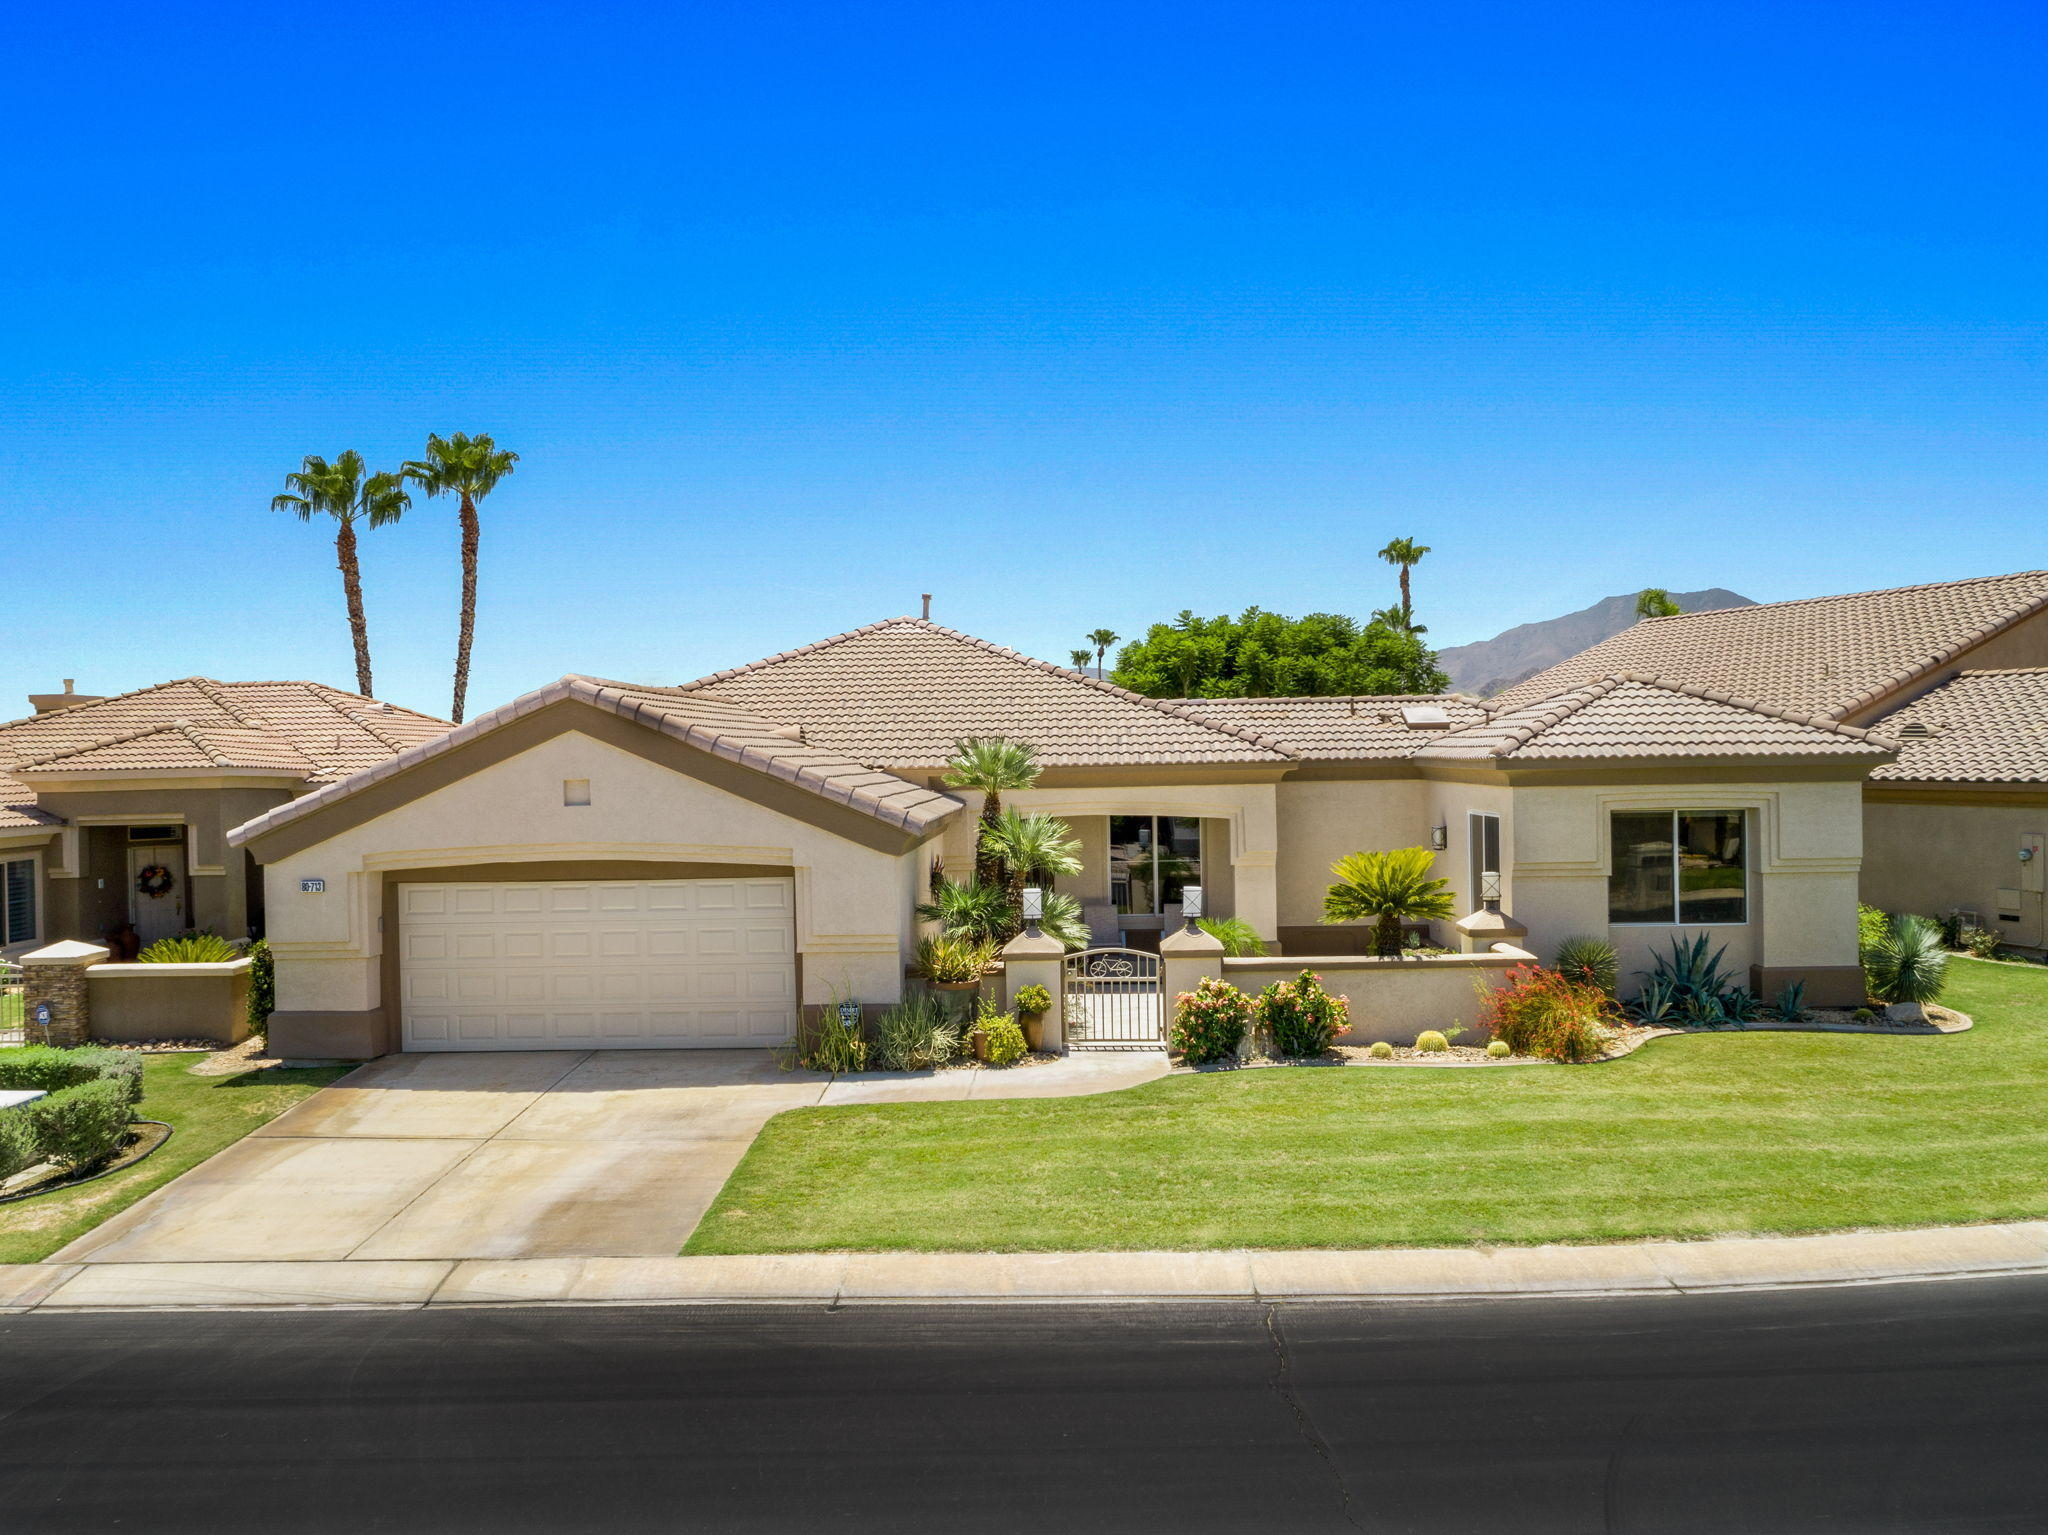 Photo of 80713 Turnberry Court, Indio, CA 92201